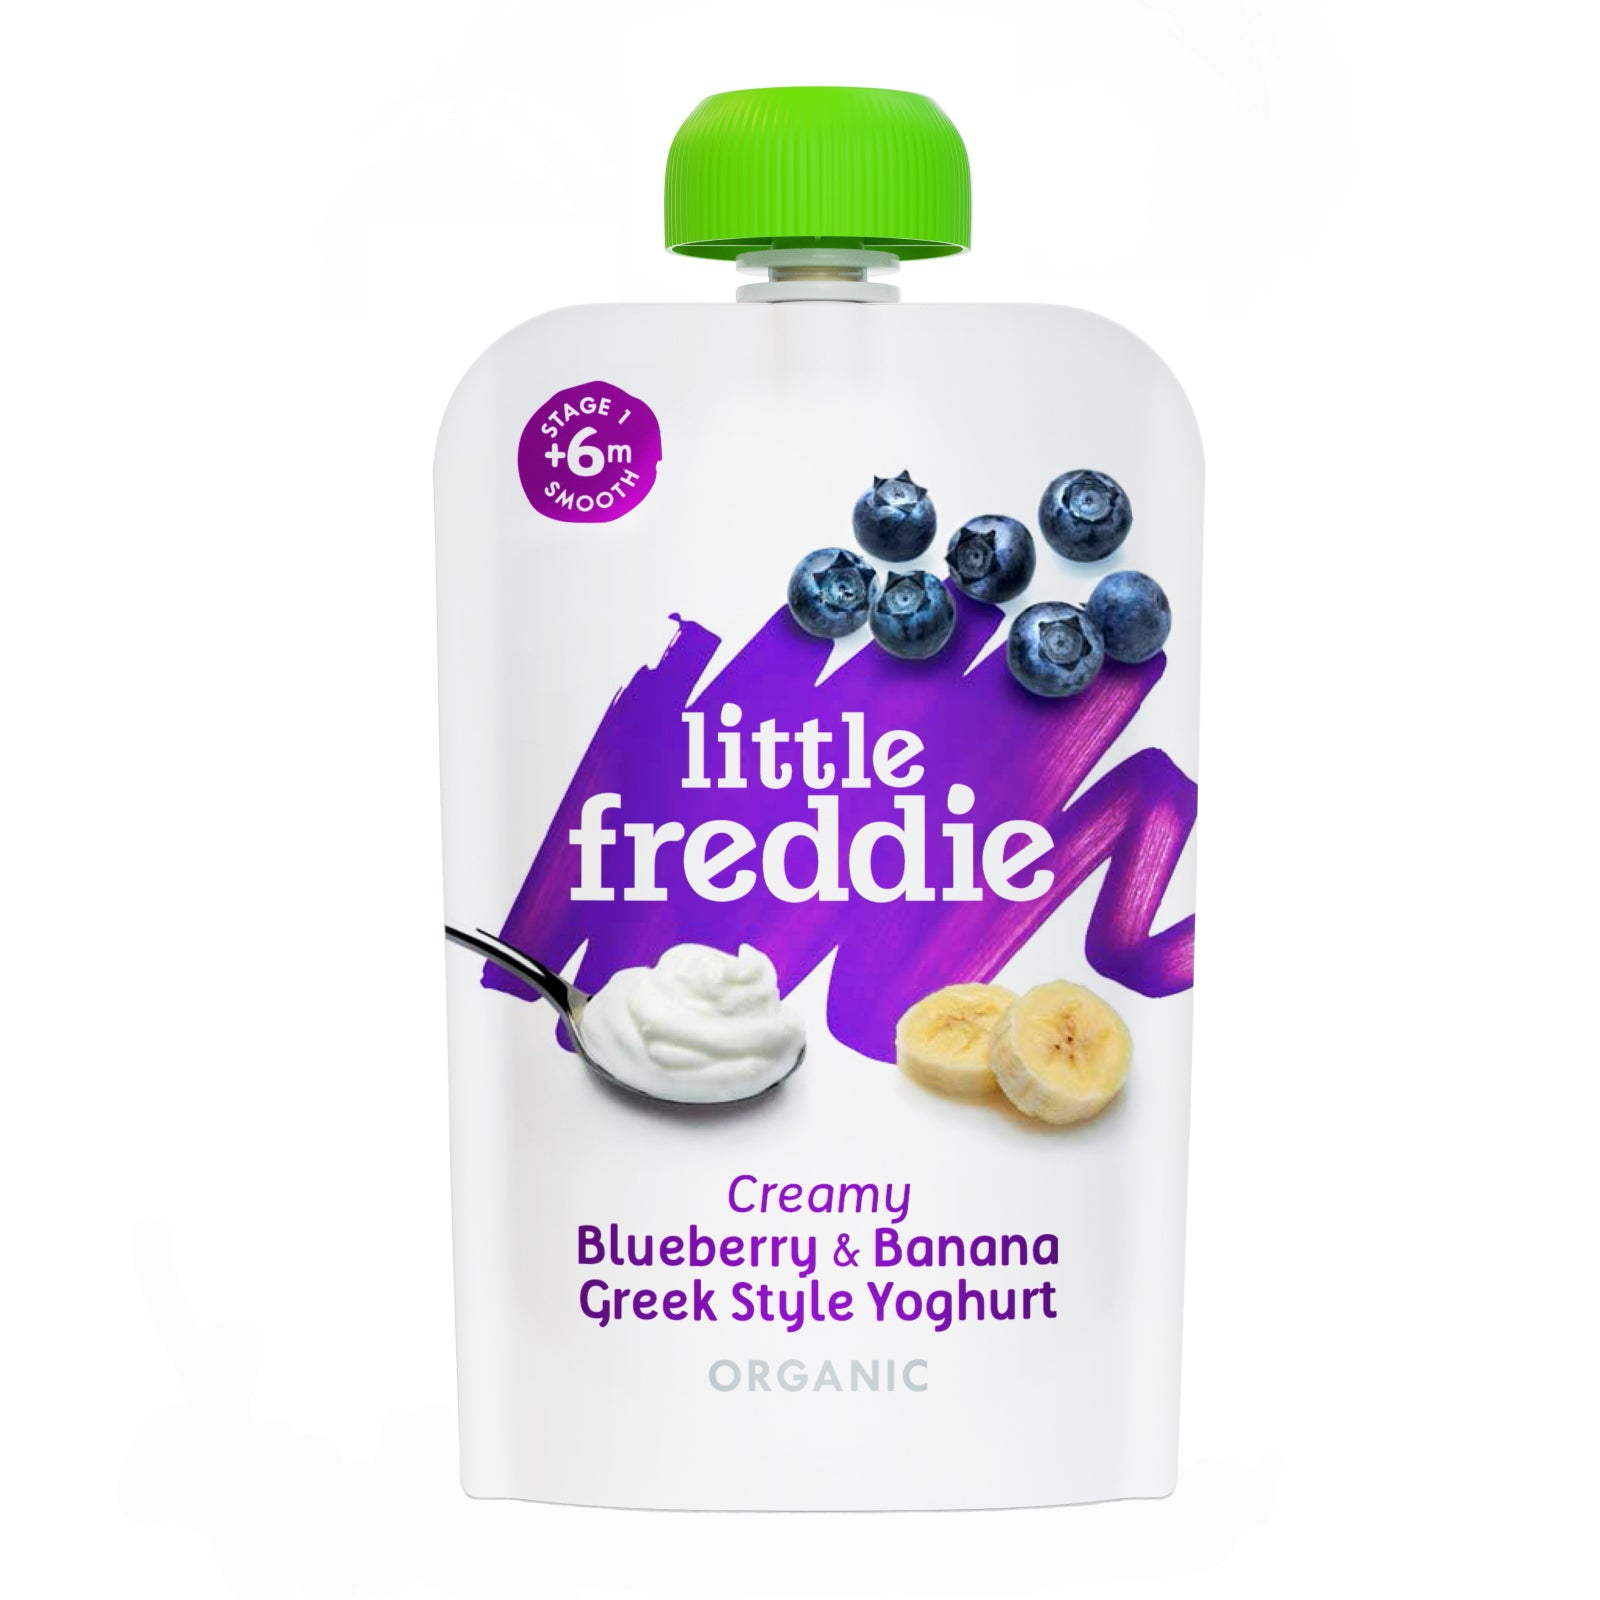 Little Freddie  Creamy  Blueberry & Banana Greek Style Yoghurt - 100g